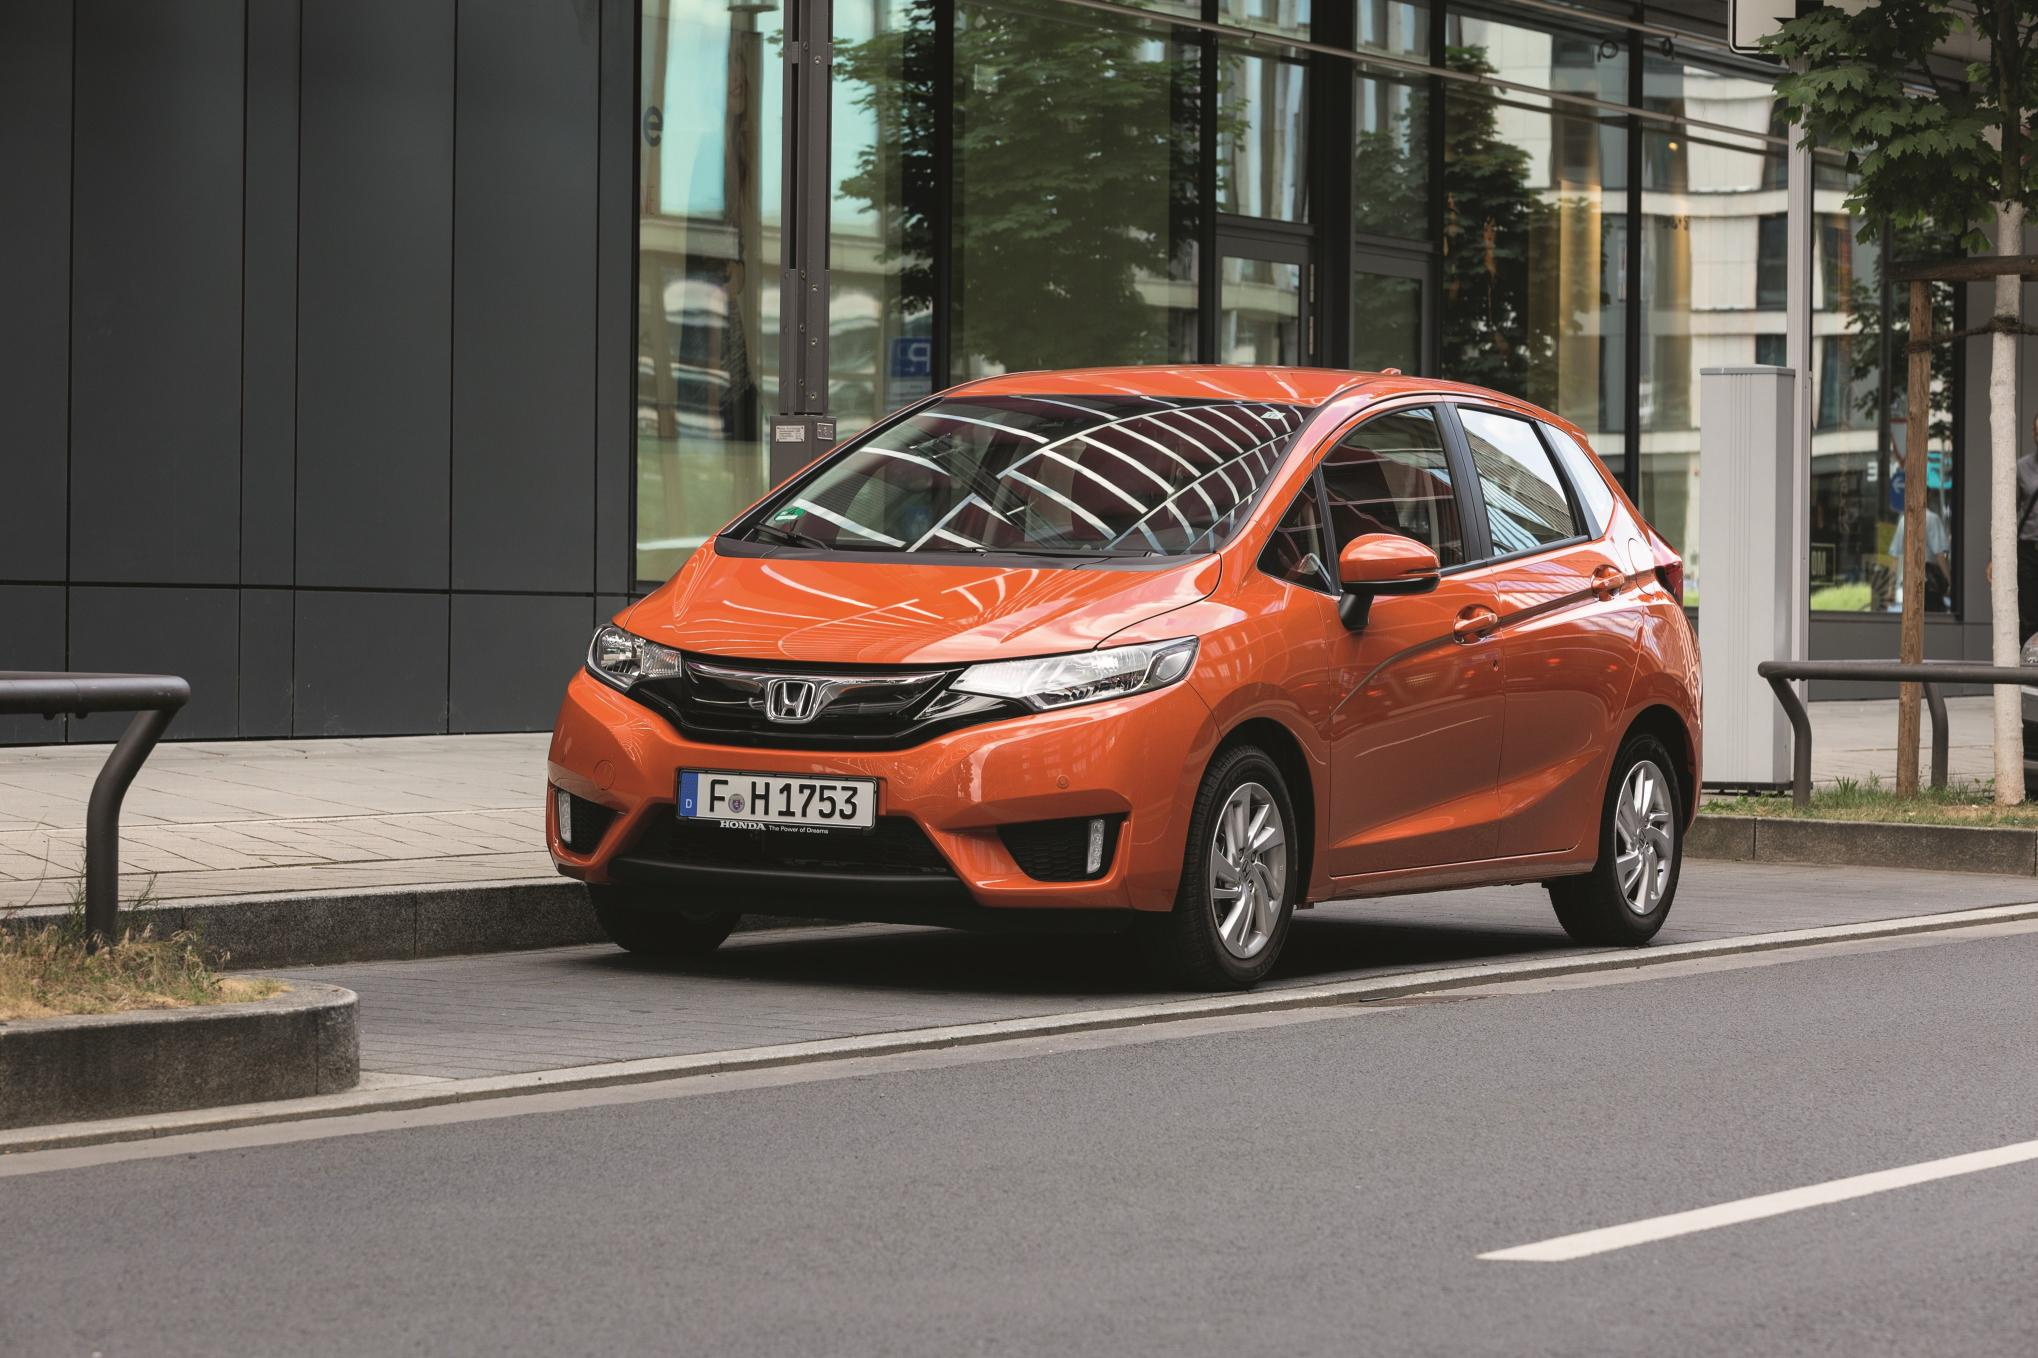 Honda Released UK Starting Price For The New Jazz Hatchback